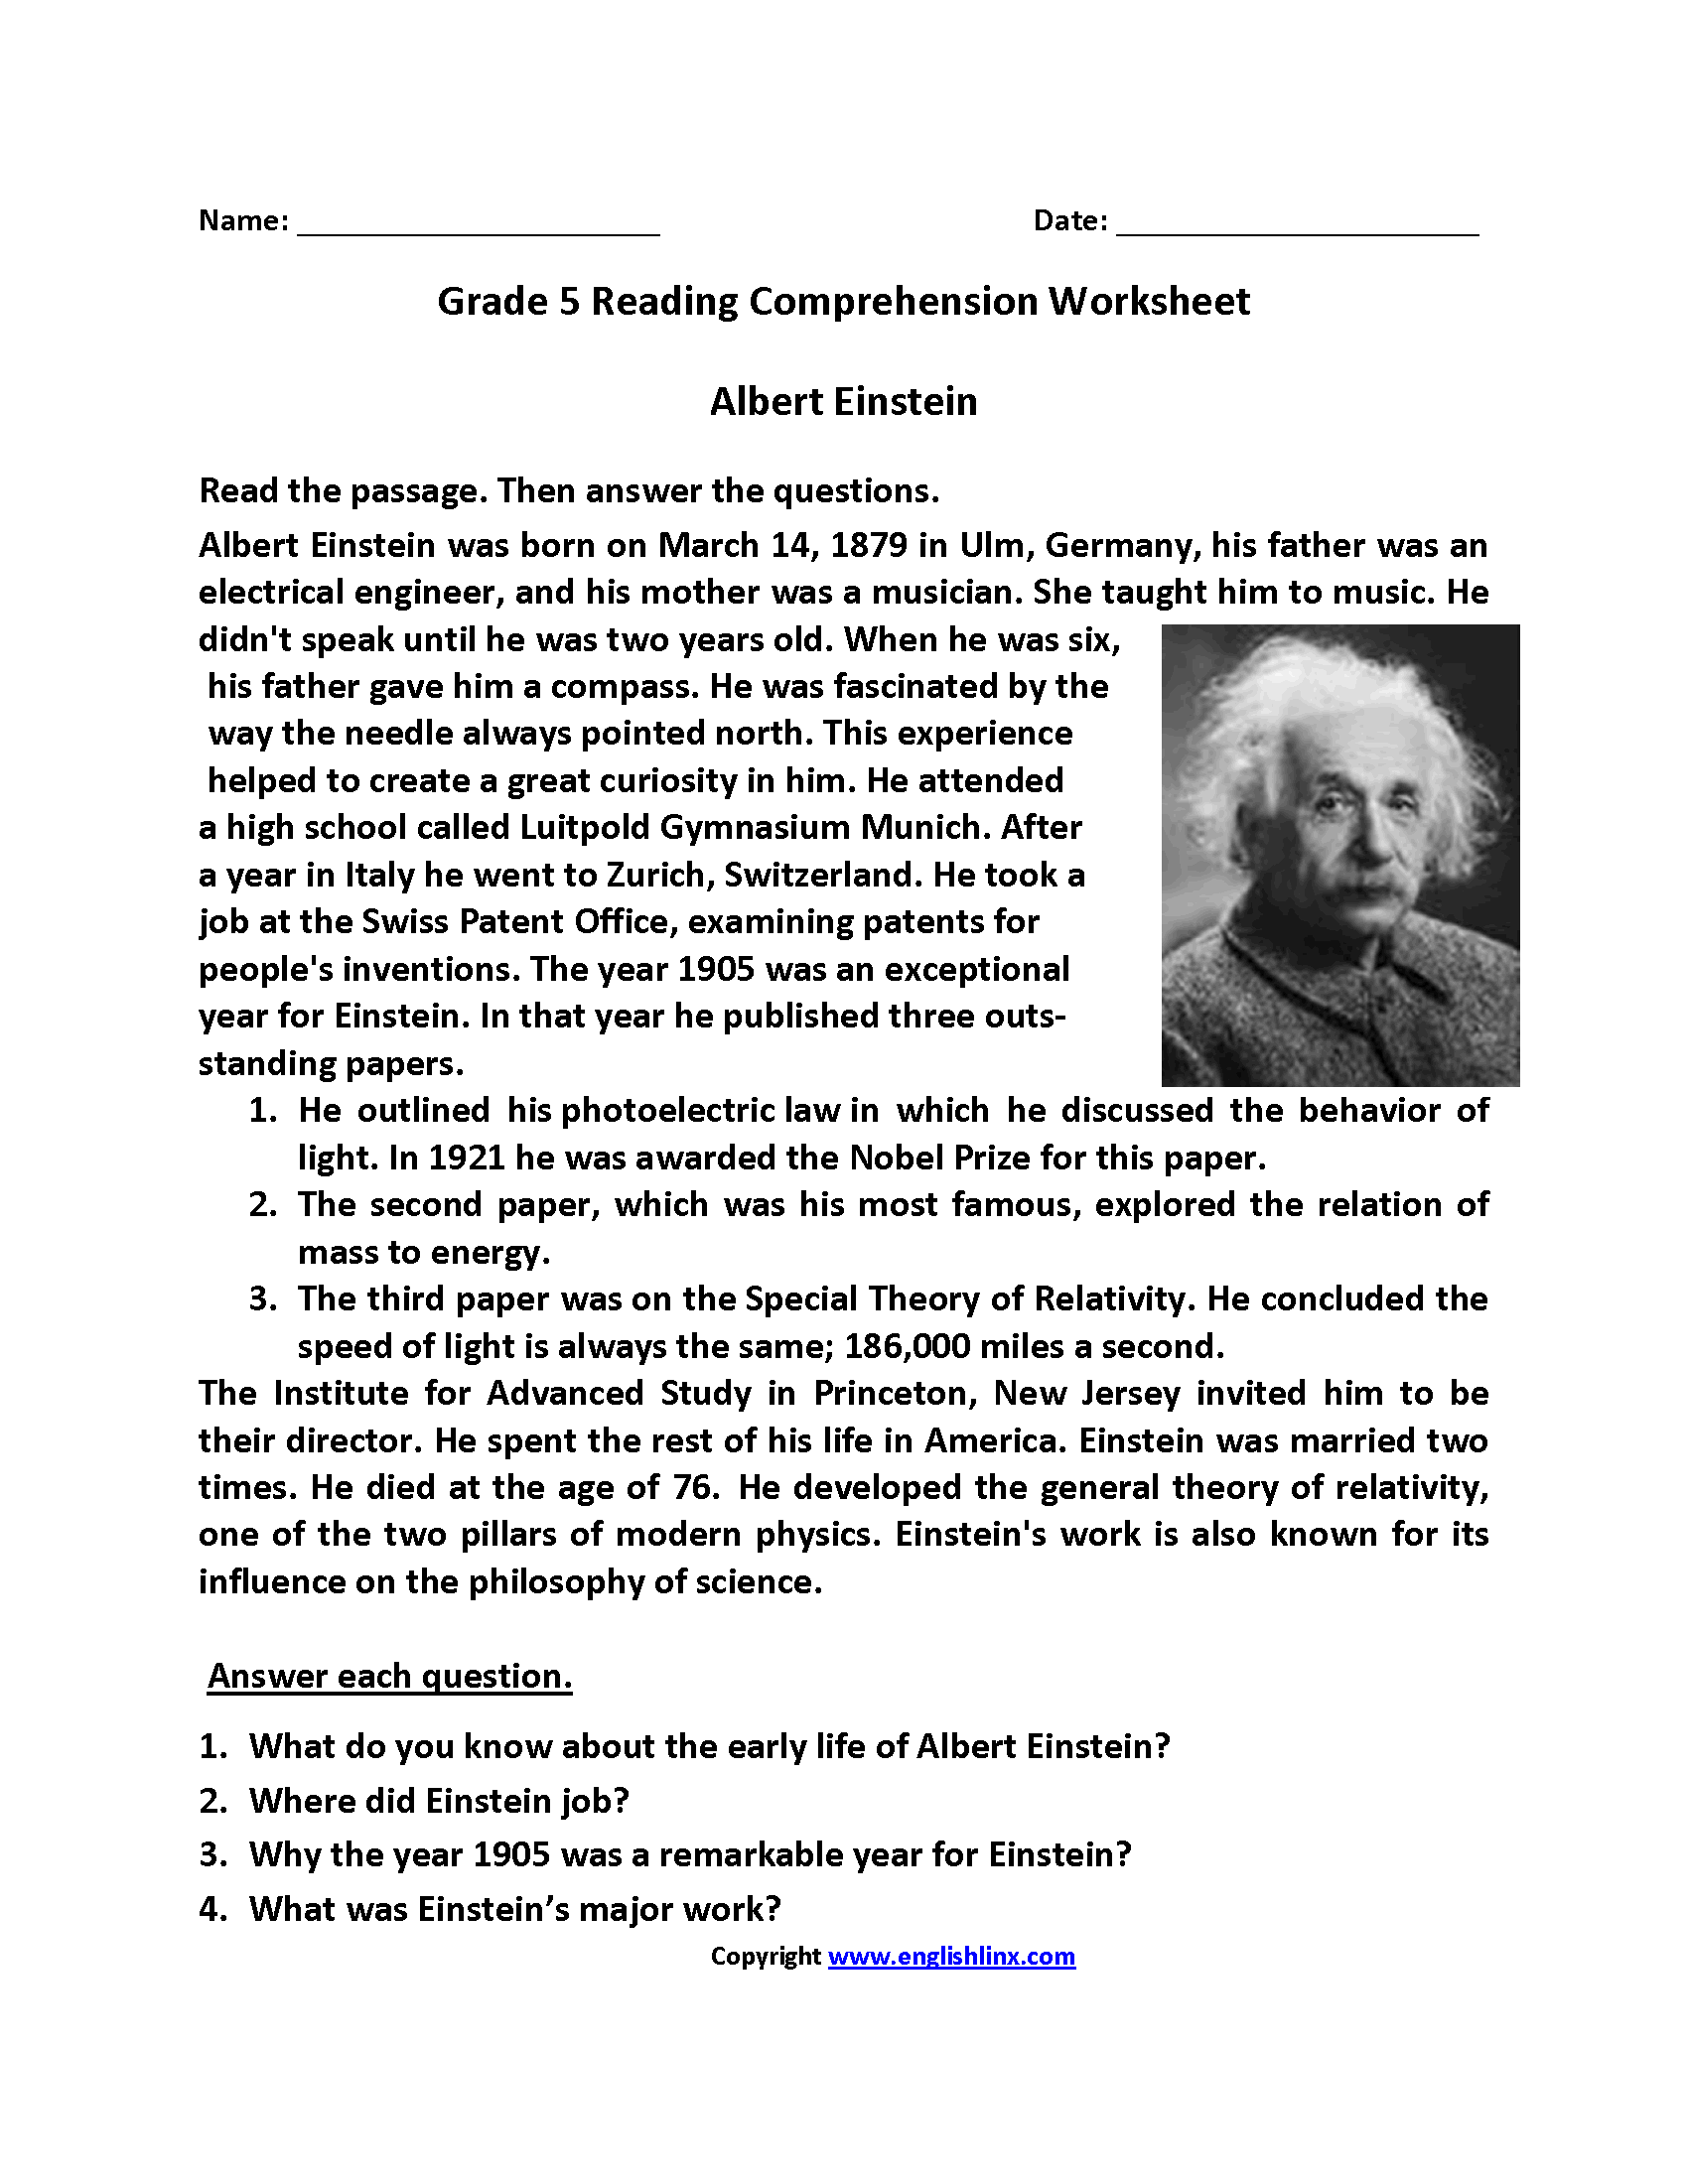 - Albert Einstein Fifth Grade Reading Worksheets (With Images